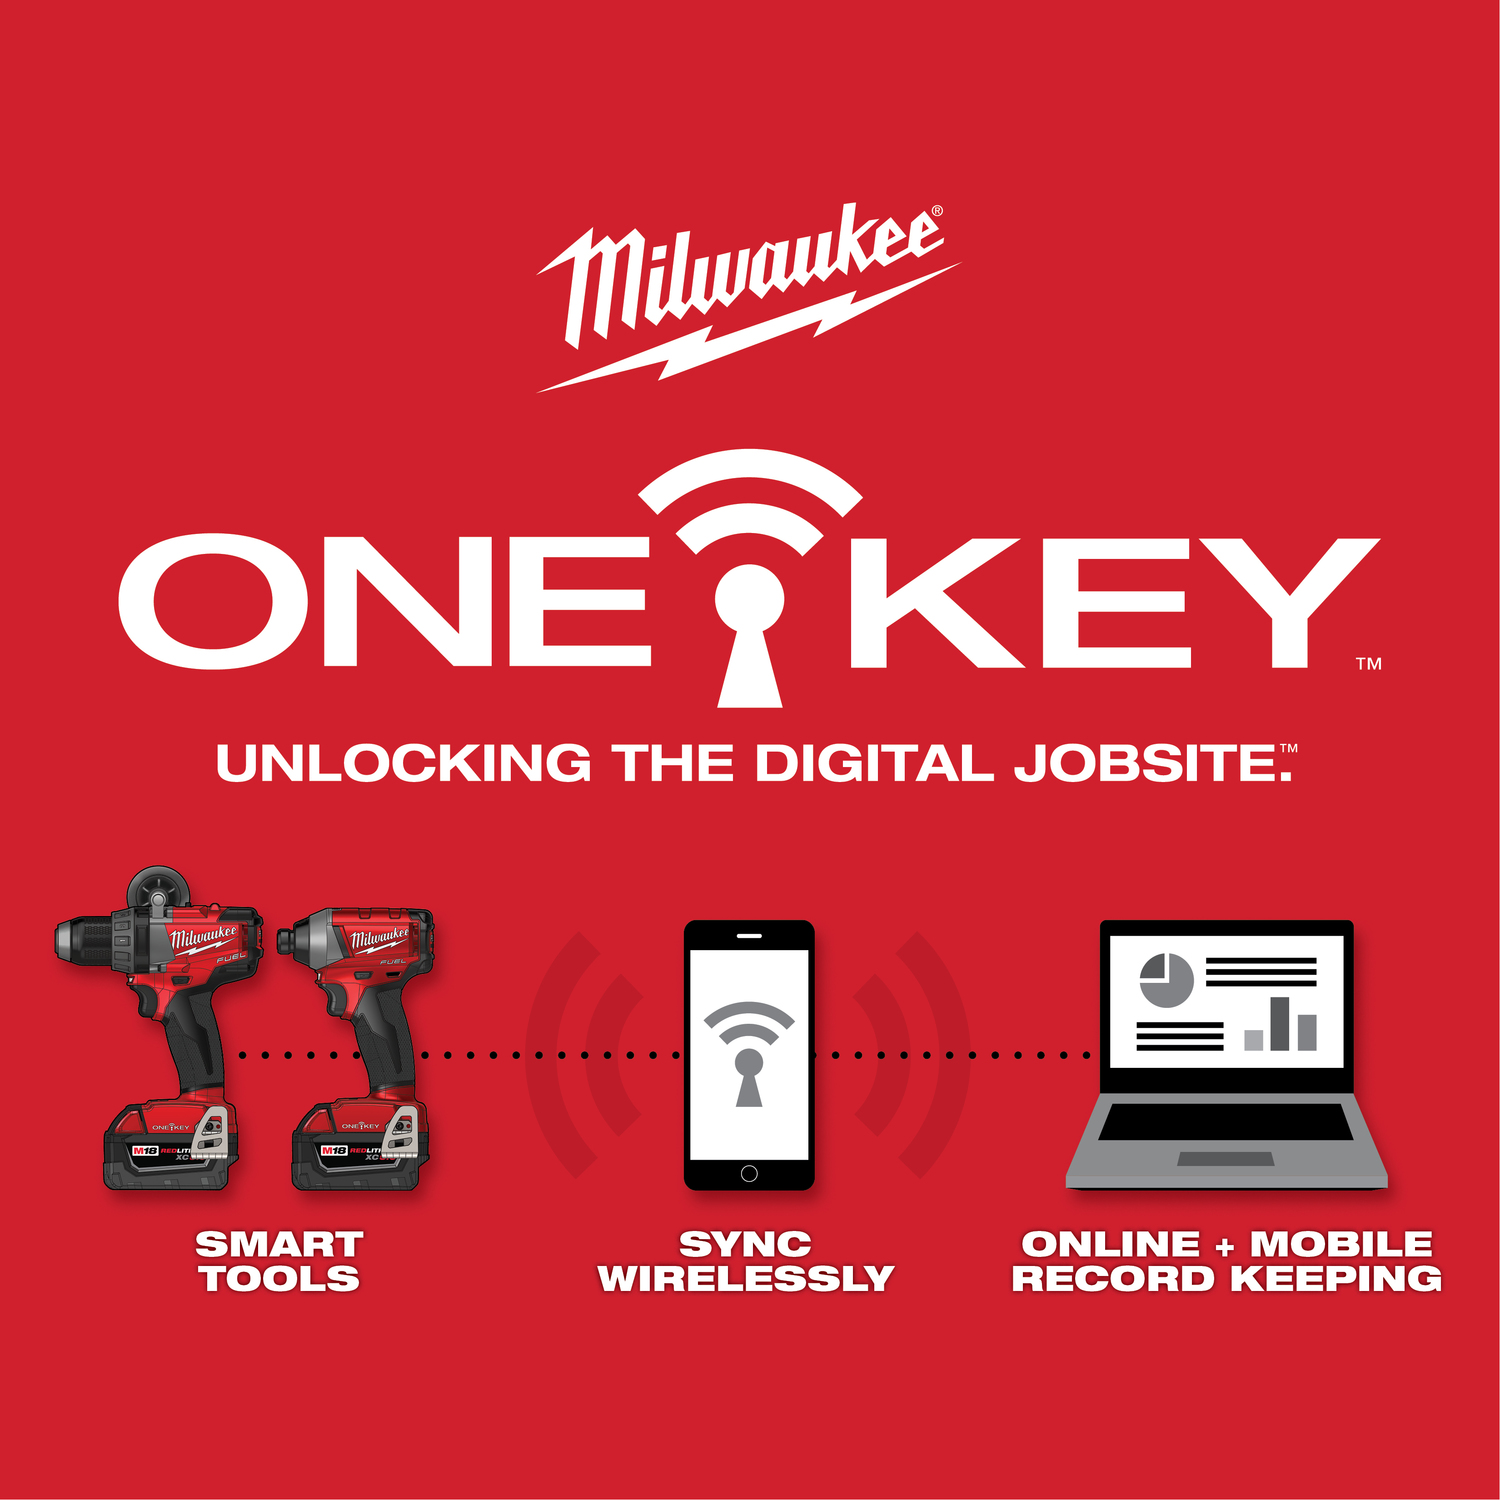 milwaukee one-key